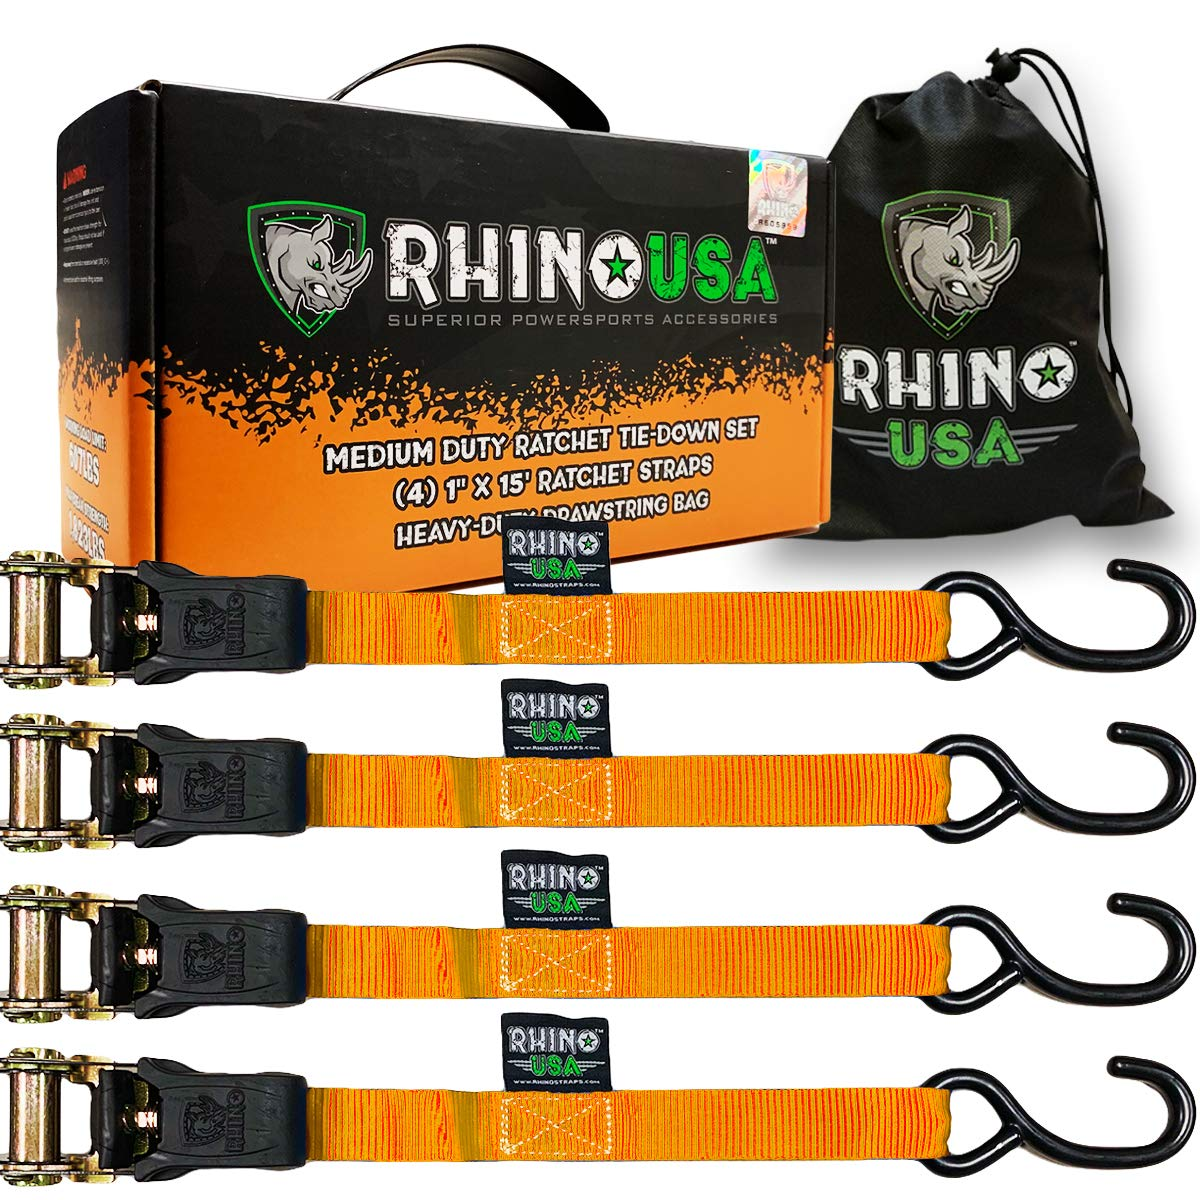 RHINO USA Ratchet Tie Down Straps (4PK) - 1,823lb Guaranteed Max Break Strength, Includes (4) Premium 1'' x 15' Rachet Tie Downs with Padded Handles. Best for Moving, Securing Cargo (ORANGE)